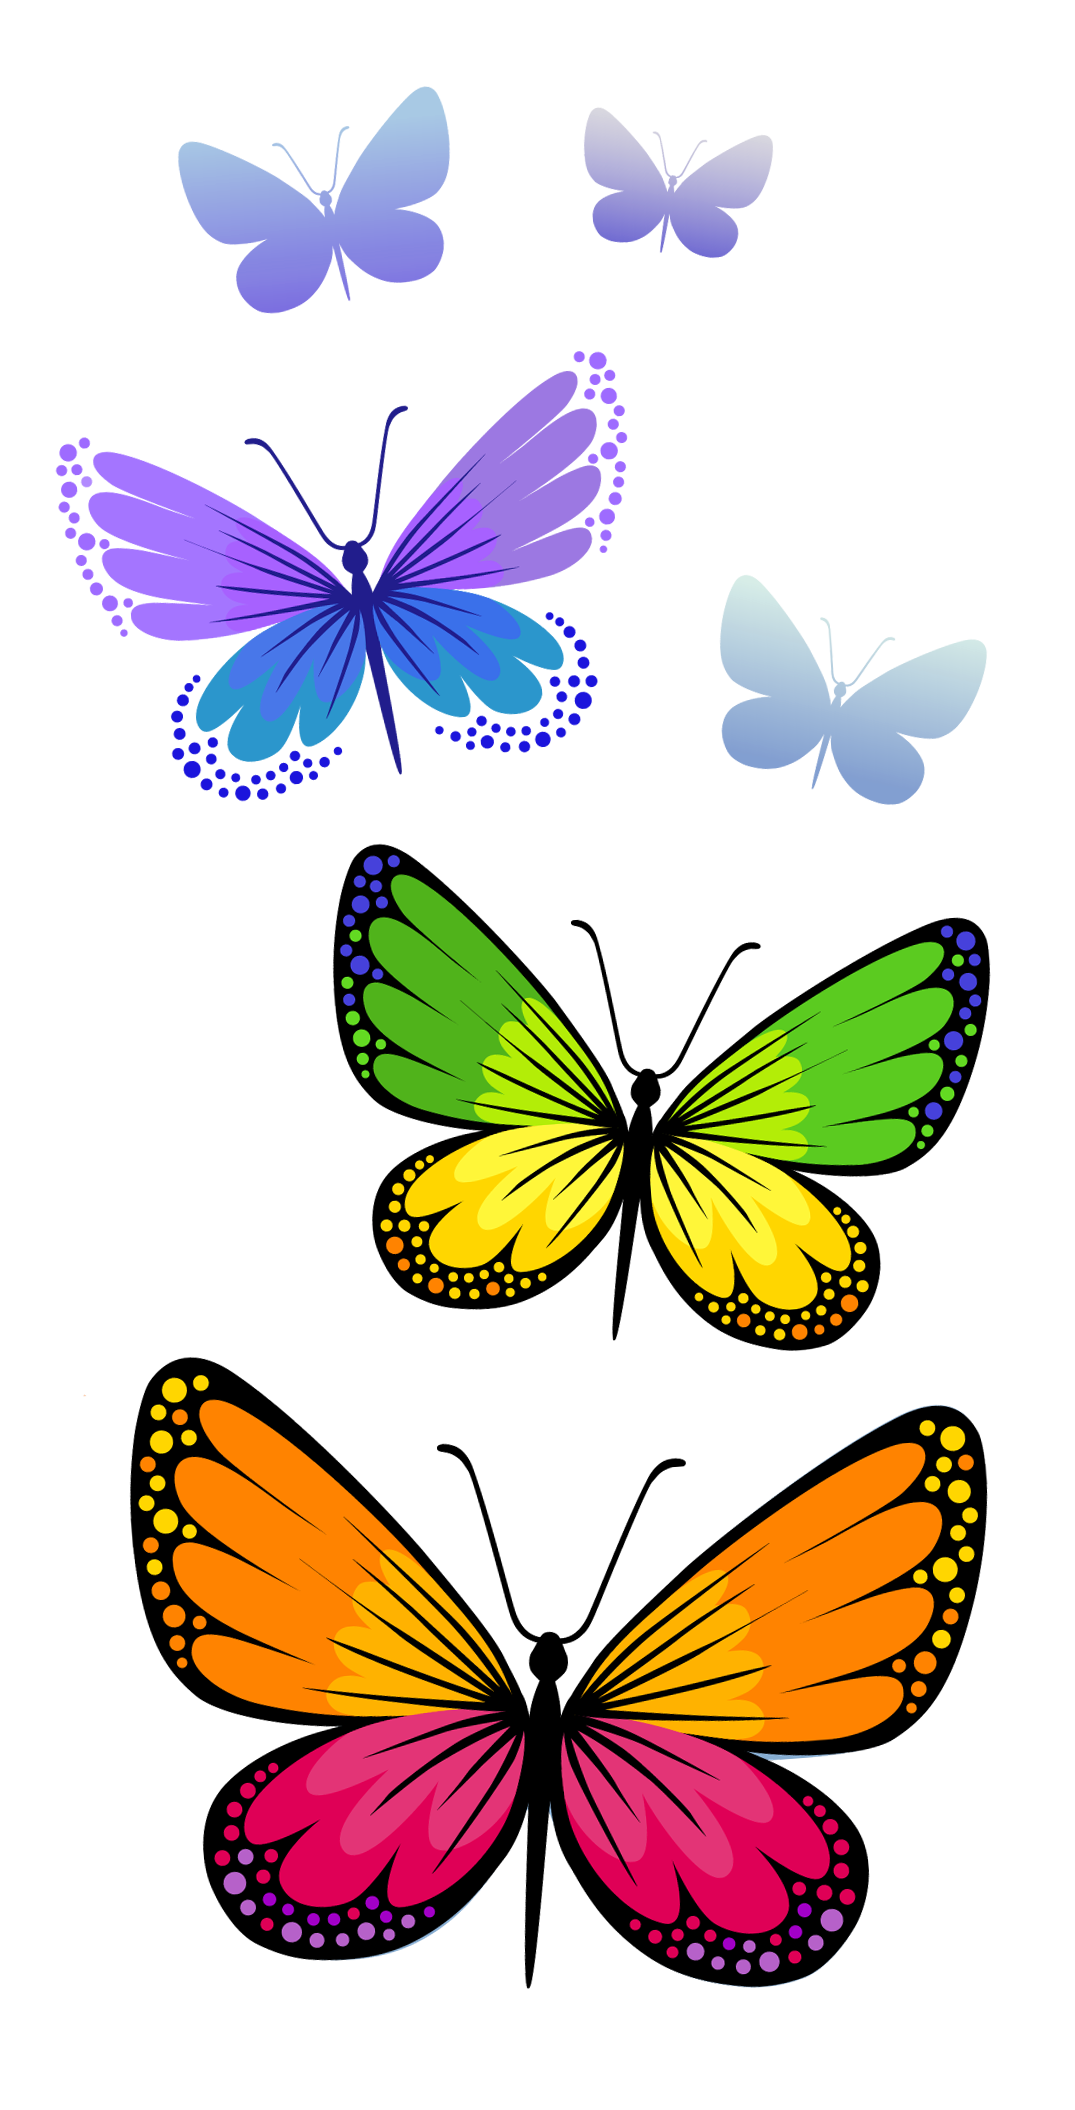 Butterflies clipart png. Composition image gallery yopriceville